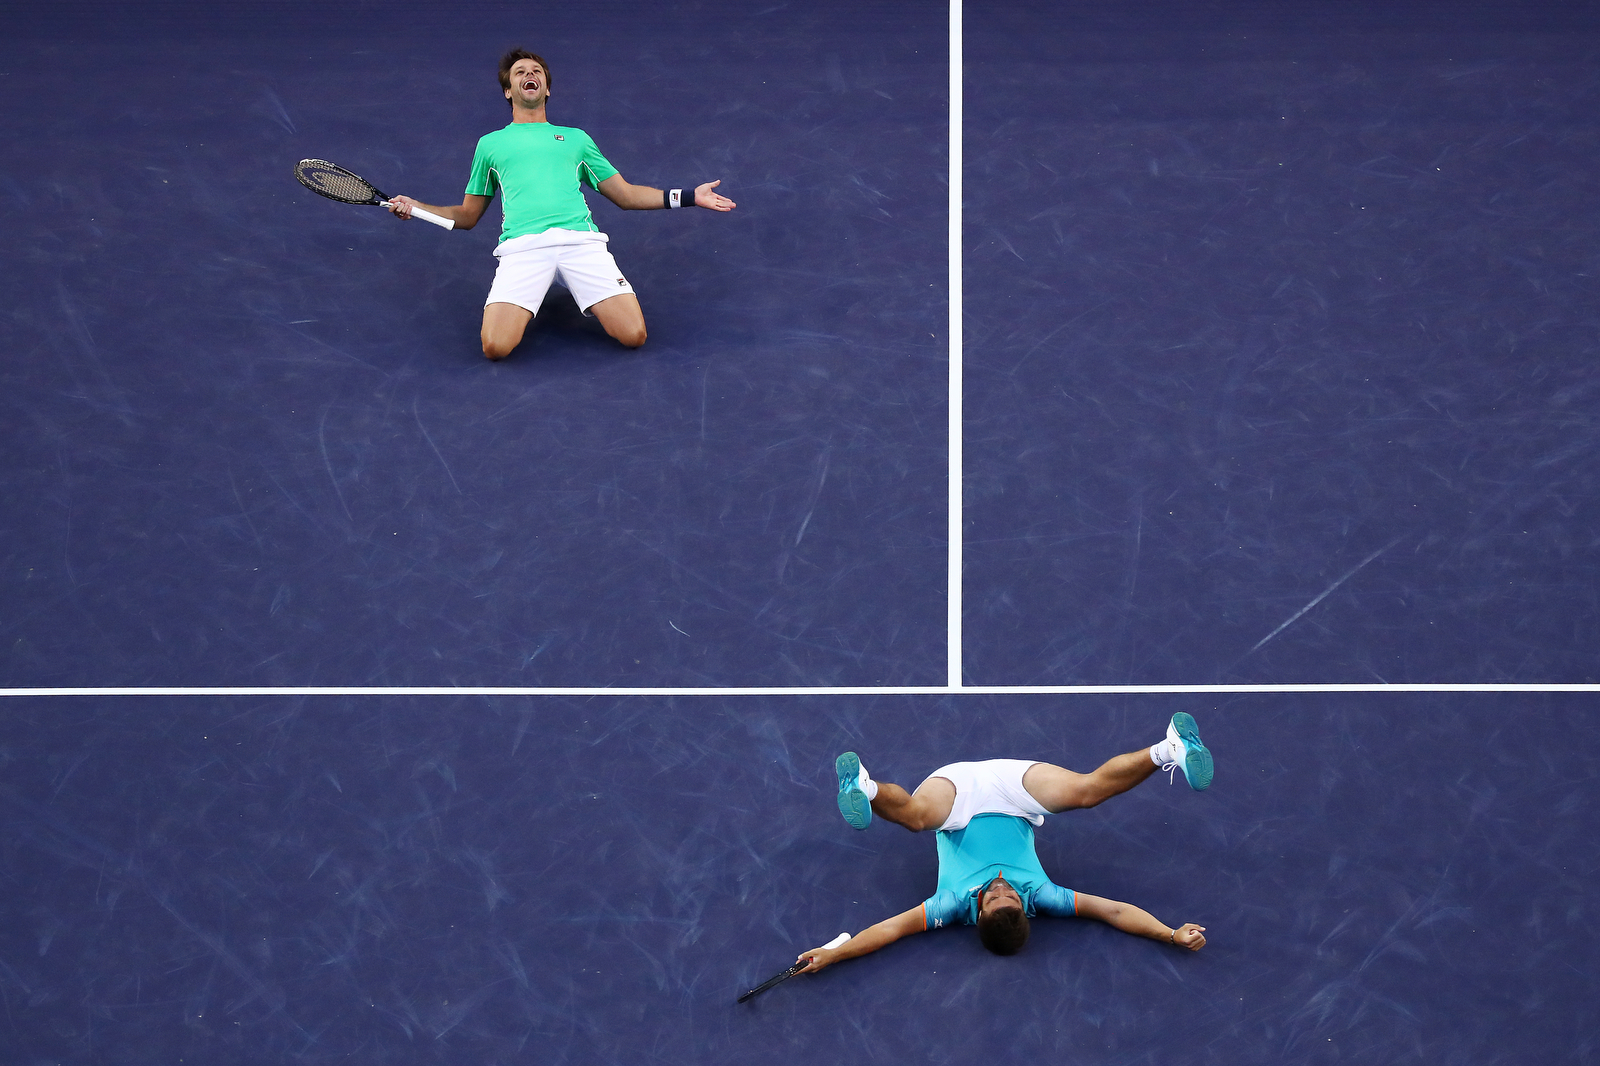 INDIAN WELLS, CALIFORNIA - MARCH 16: Nikola Mektic of Croatia and Horacio Zeballos of Argentina celebrate their men's doubles final match victory against Lukasz Kubot of Poland and Marcelo Melo of Brazil on Day 13 of the BNP Paribas Open at the Indian Wells Tennis Garden on March 16, 2019 in Indian Wells, California. (Photo by Yong Teck Lim/Getty Images)